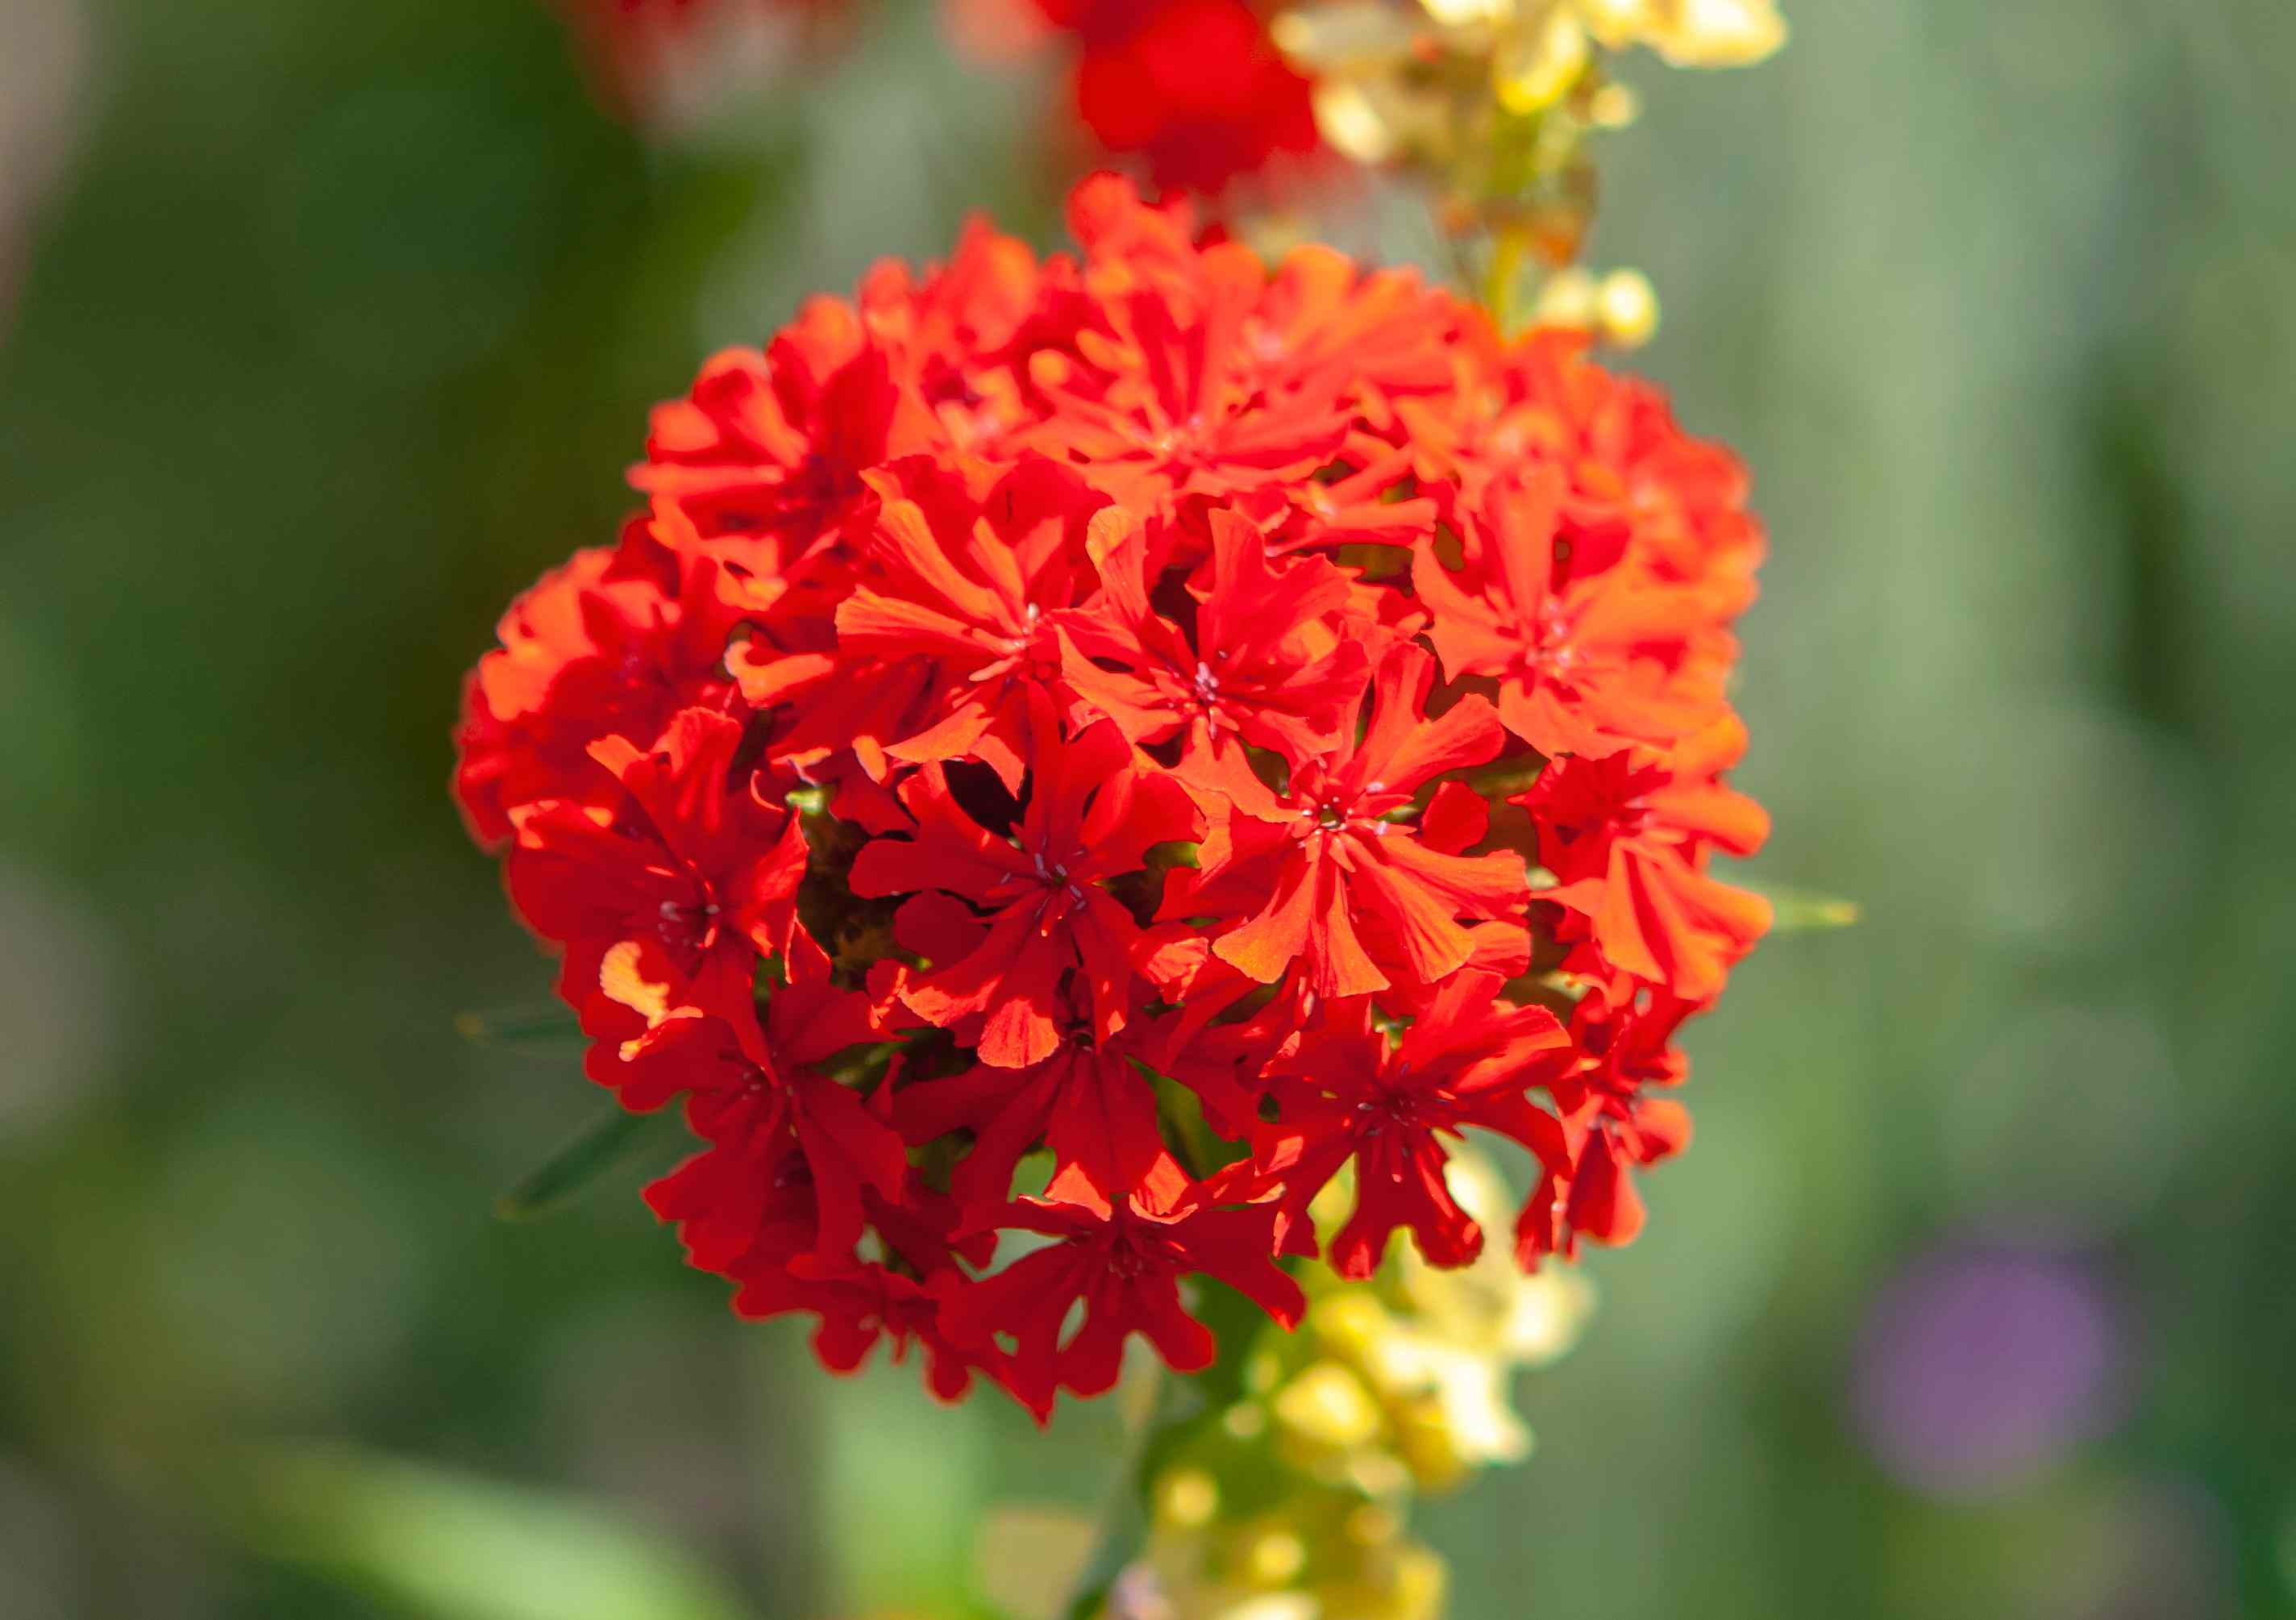 Maltese cross with bright red flower clusters closeup